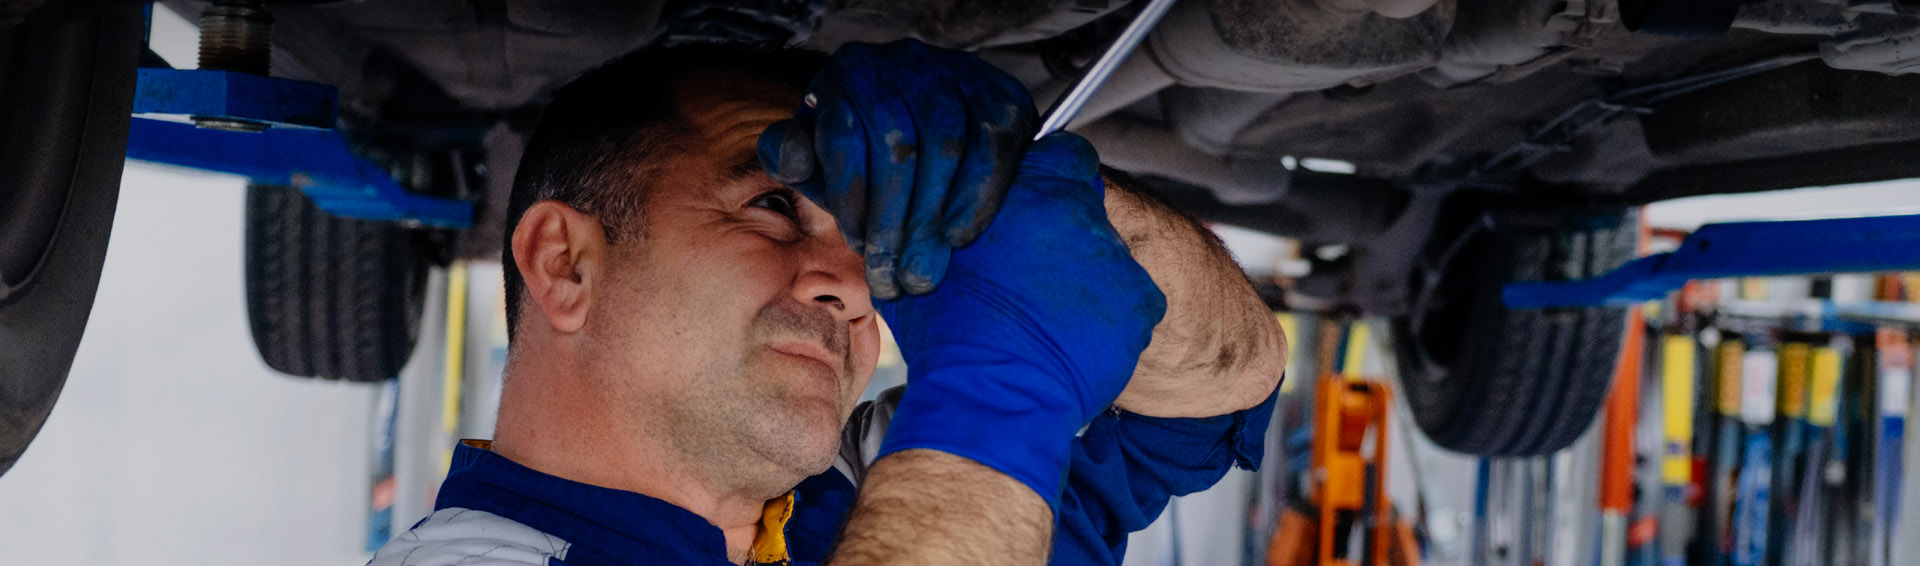 Banner Image used on the Doncaster MOT Website - Shows Car Mechanic at Universal UK MOT Centre Working on a car